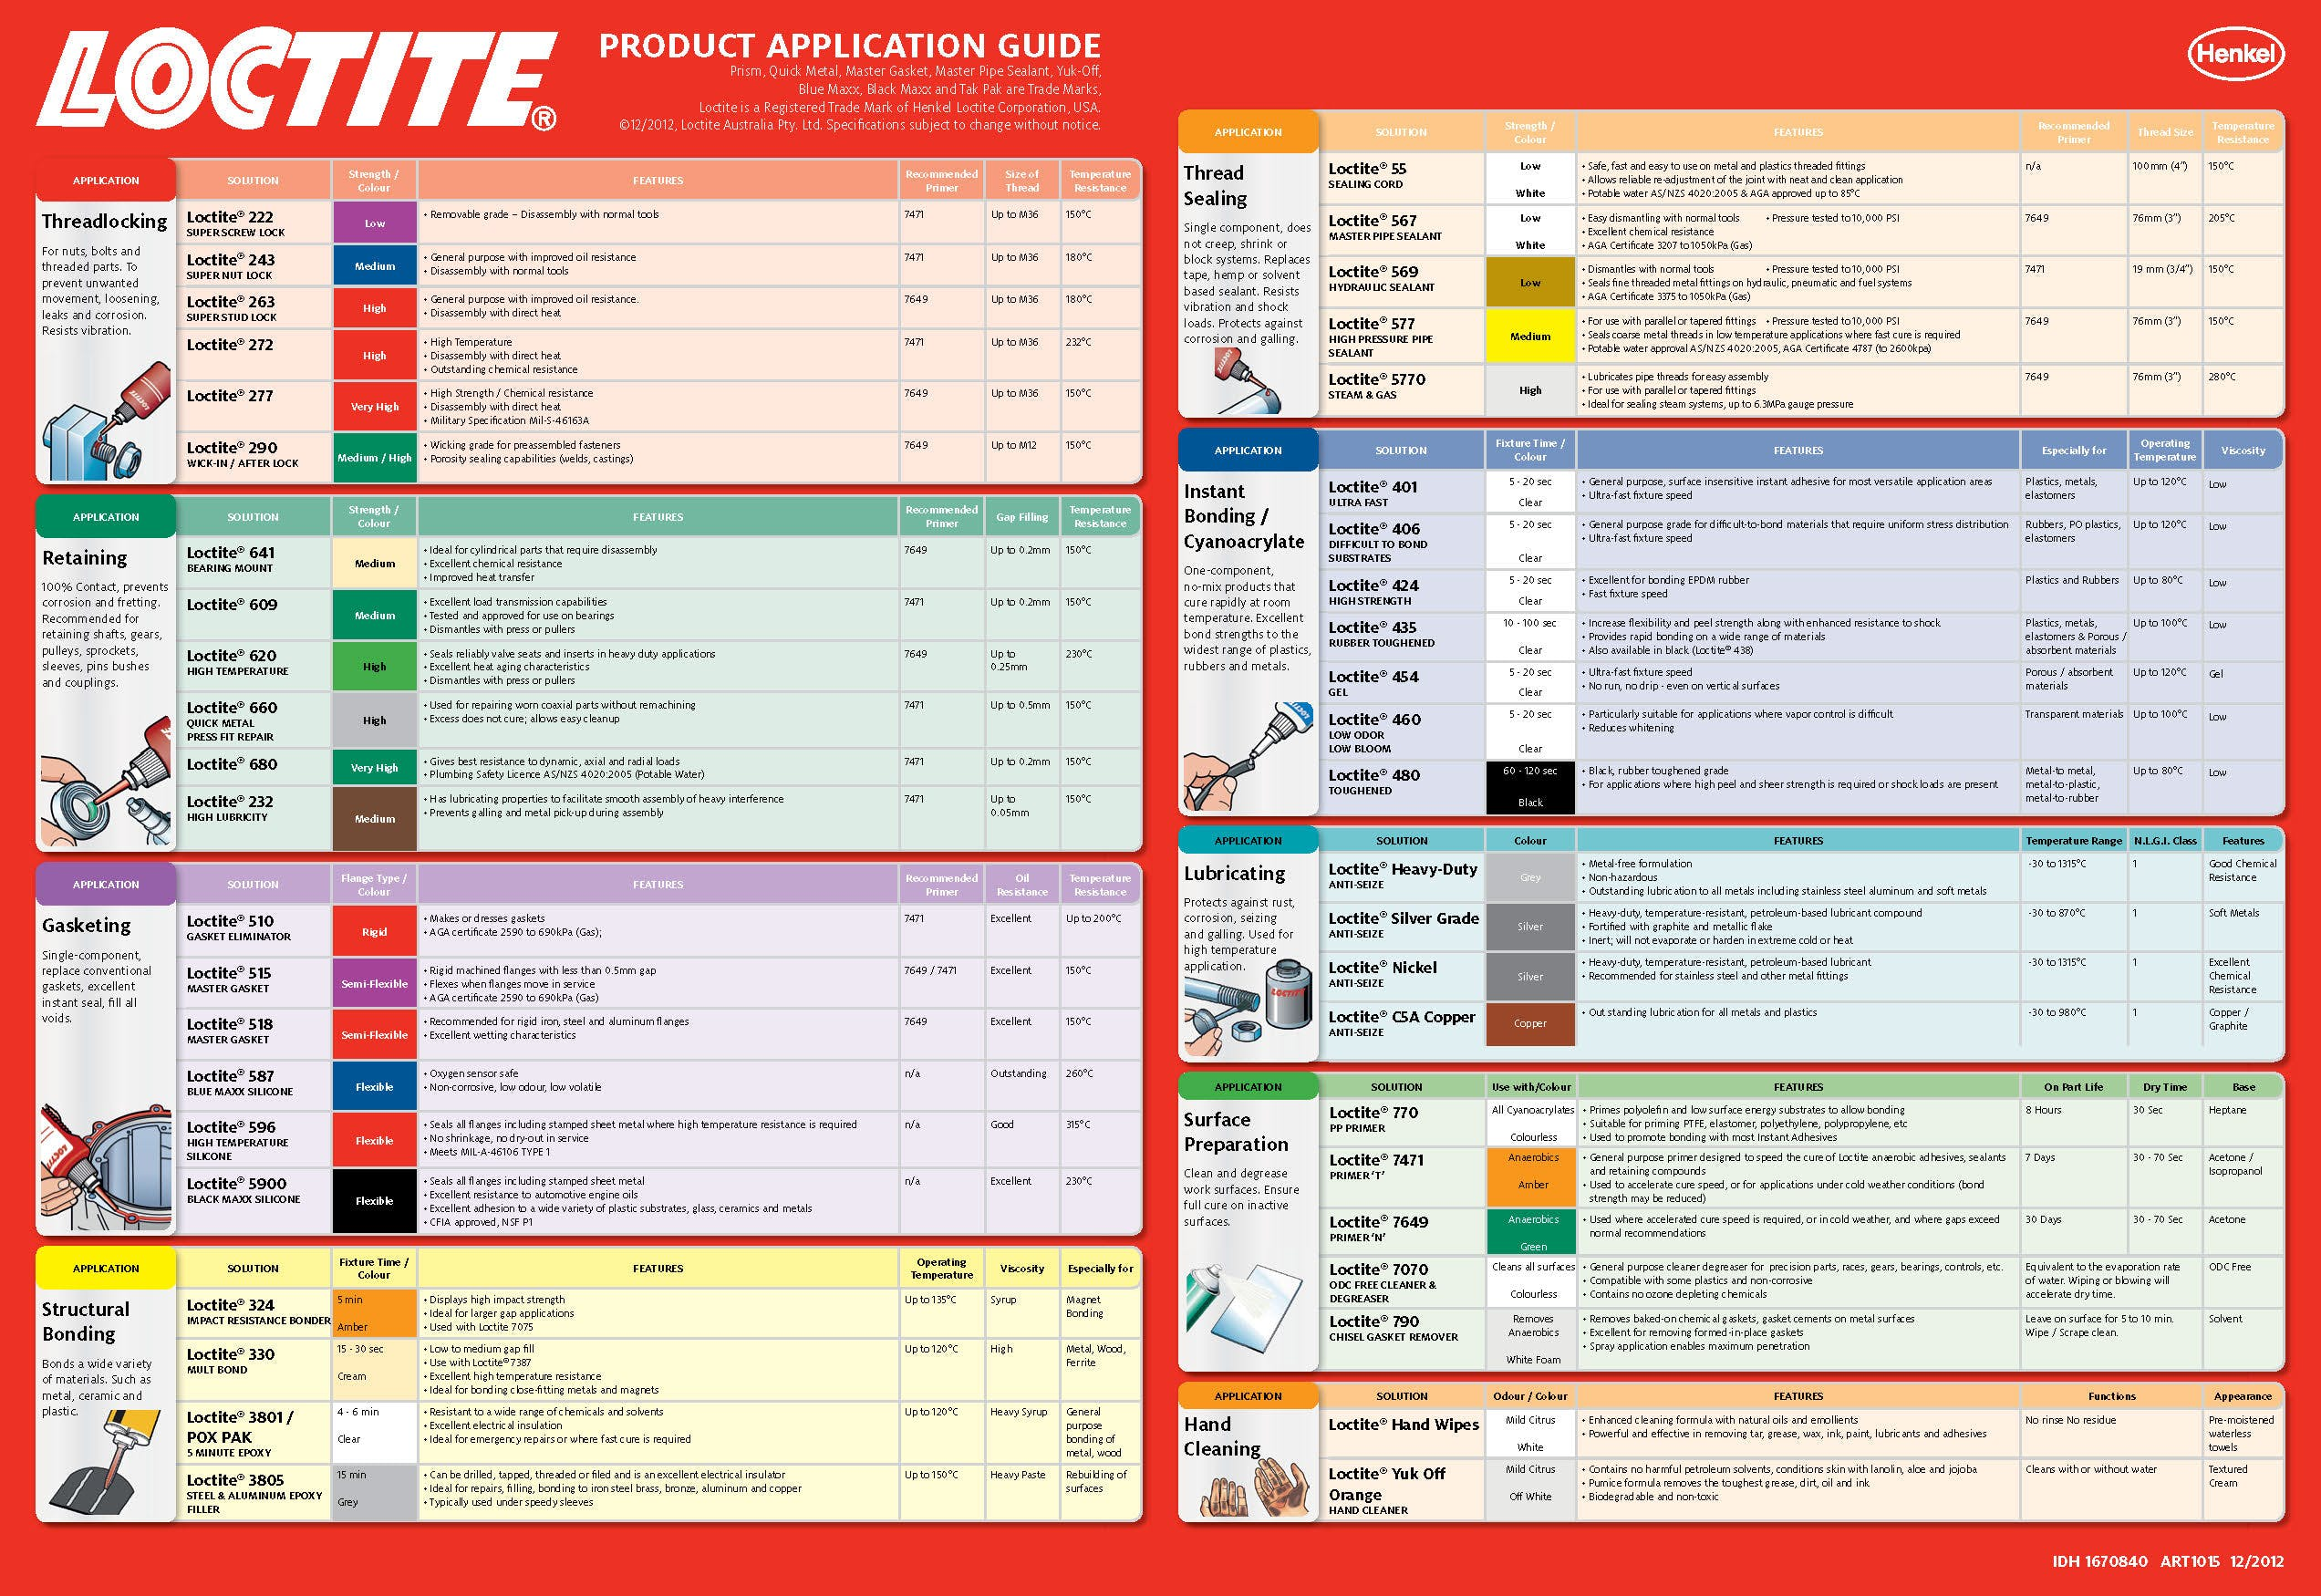 Loctite Product Application Guide